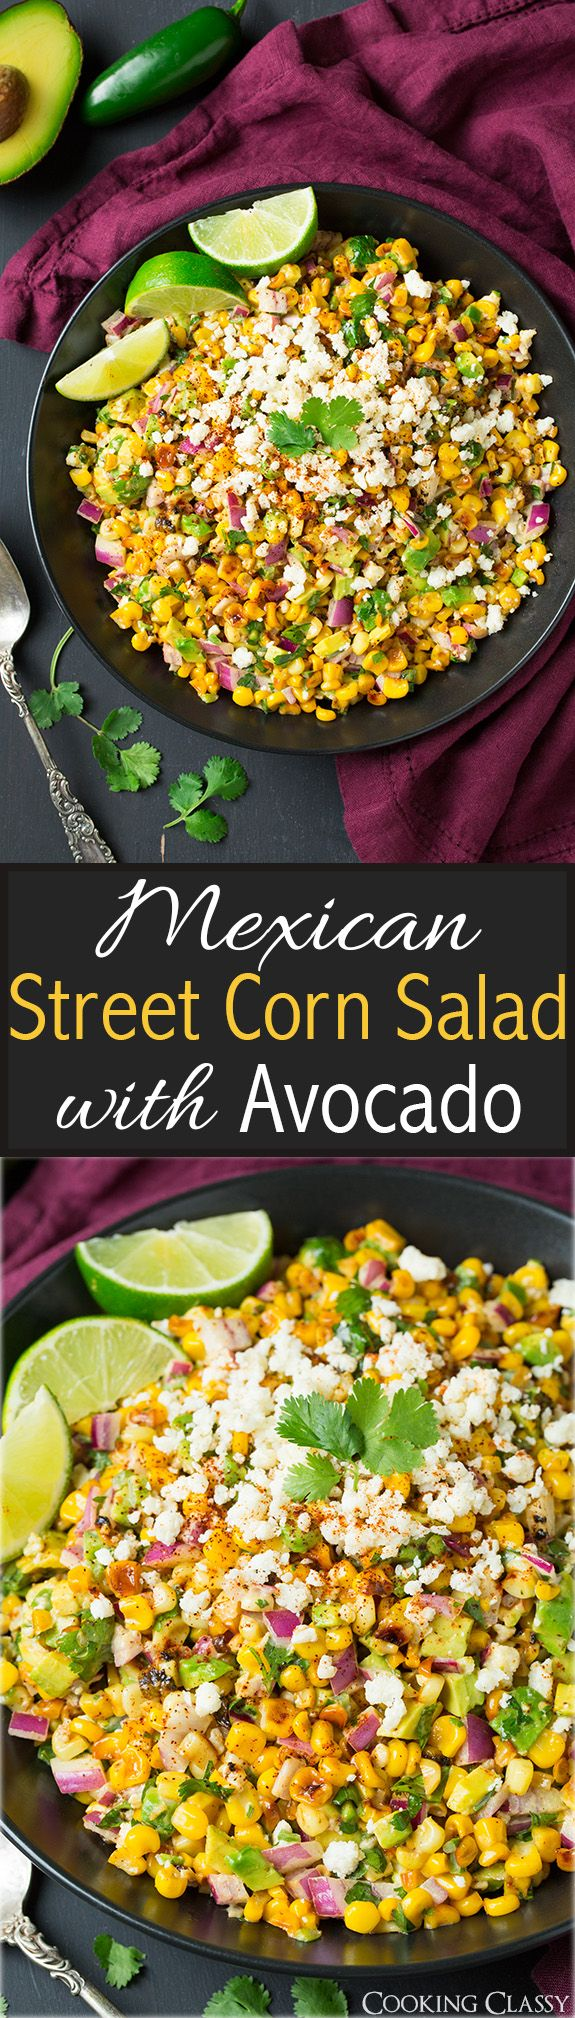 Mexican Street Corn Salad with Avocado - I served this with grilled chicken and it was AMAZING! Perfect for summer cookouts!